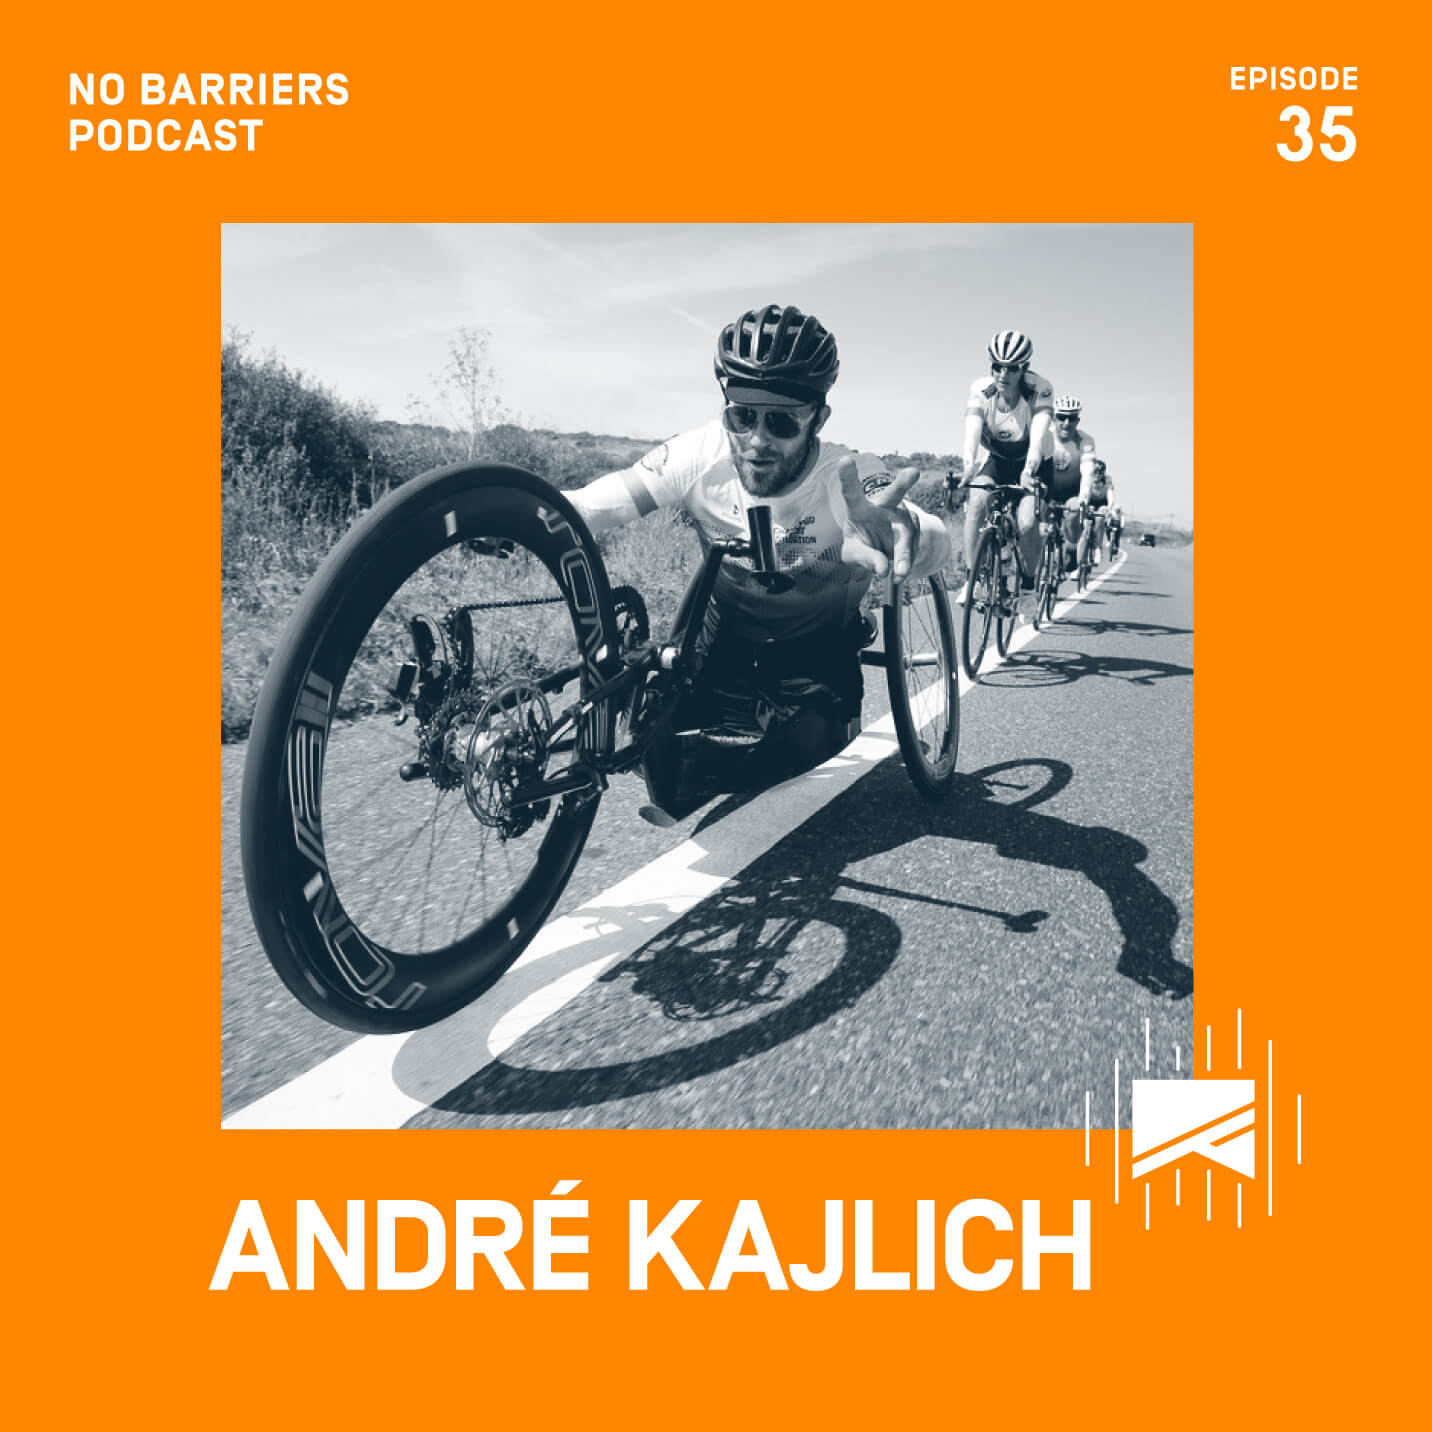 andre koljich no barriers interview